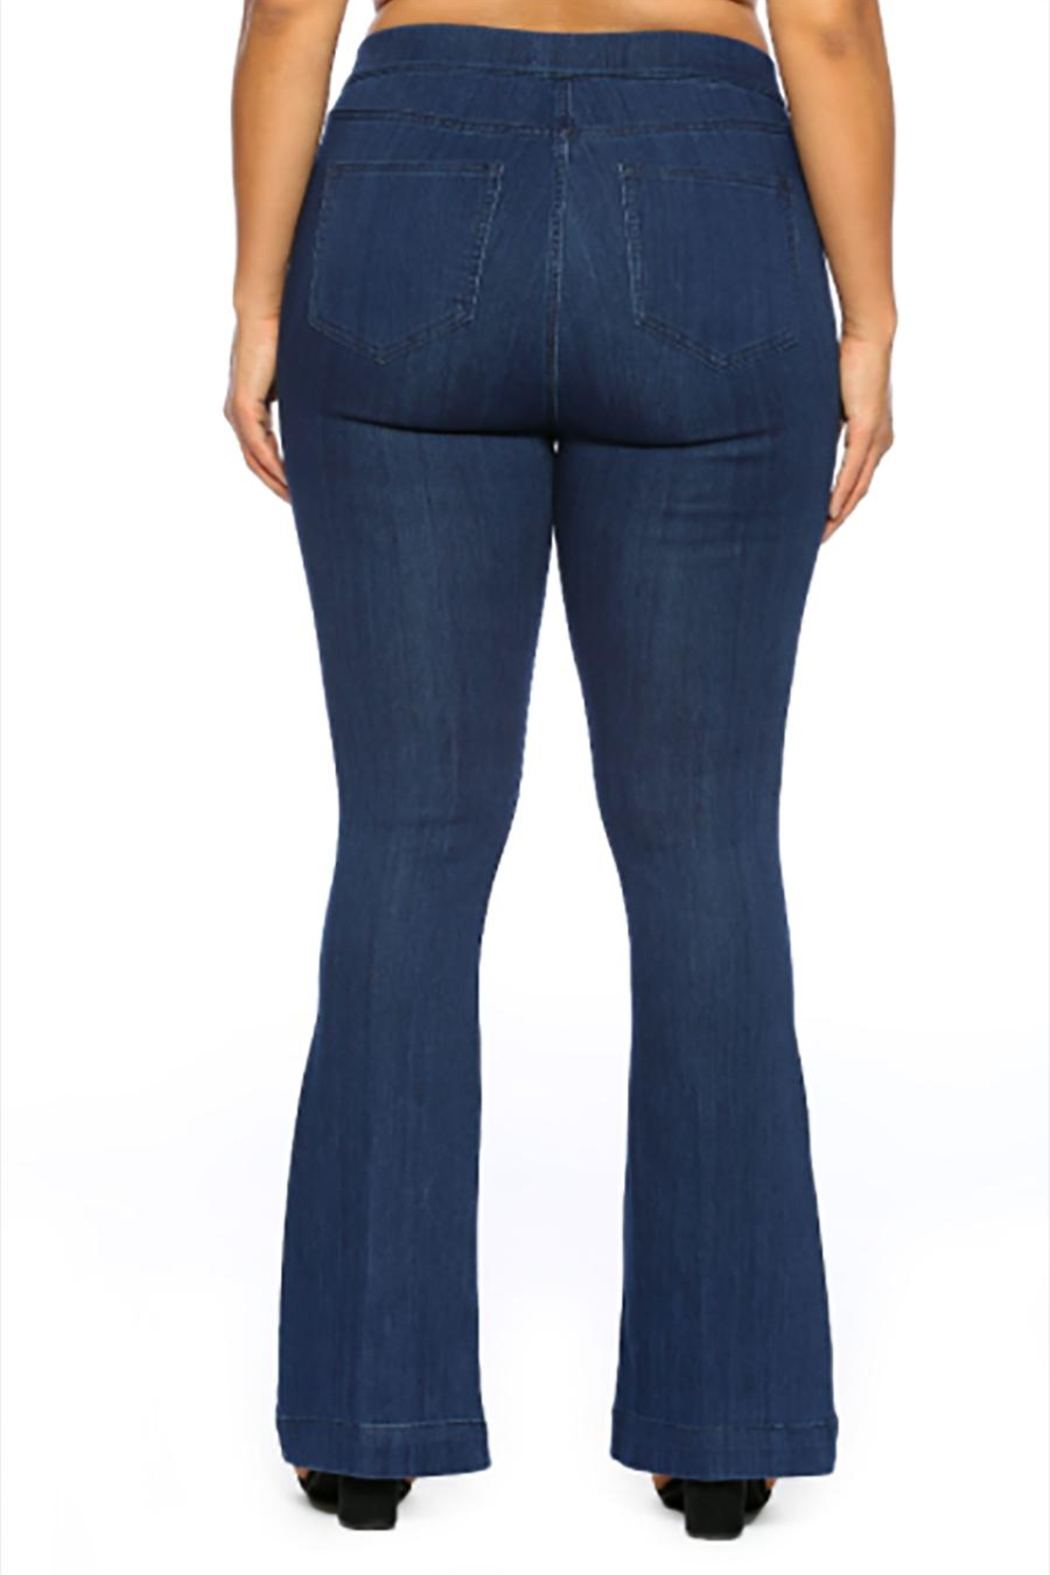 Cello Jeans Dark Plus Pullons - Front Full Image